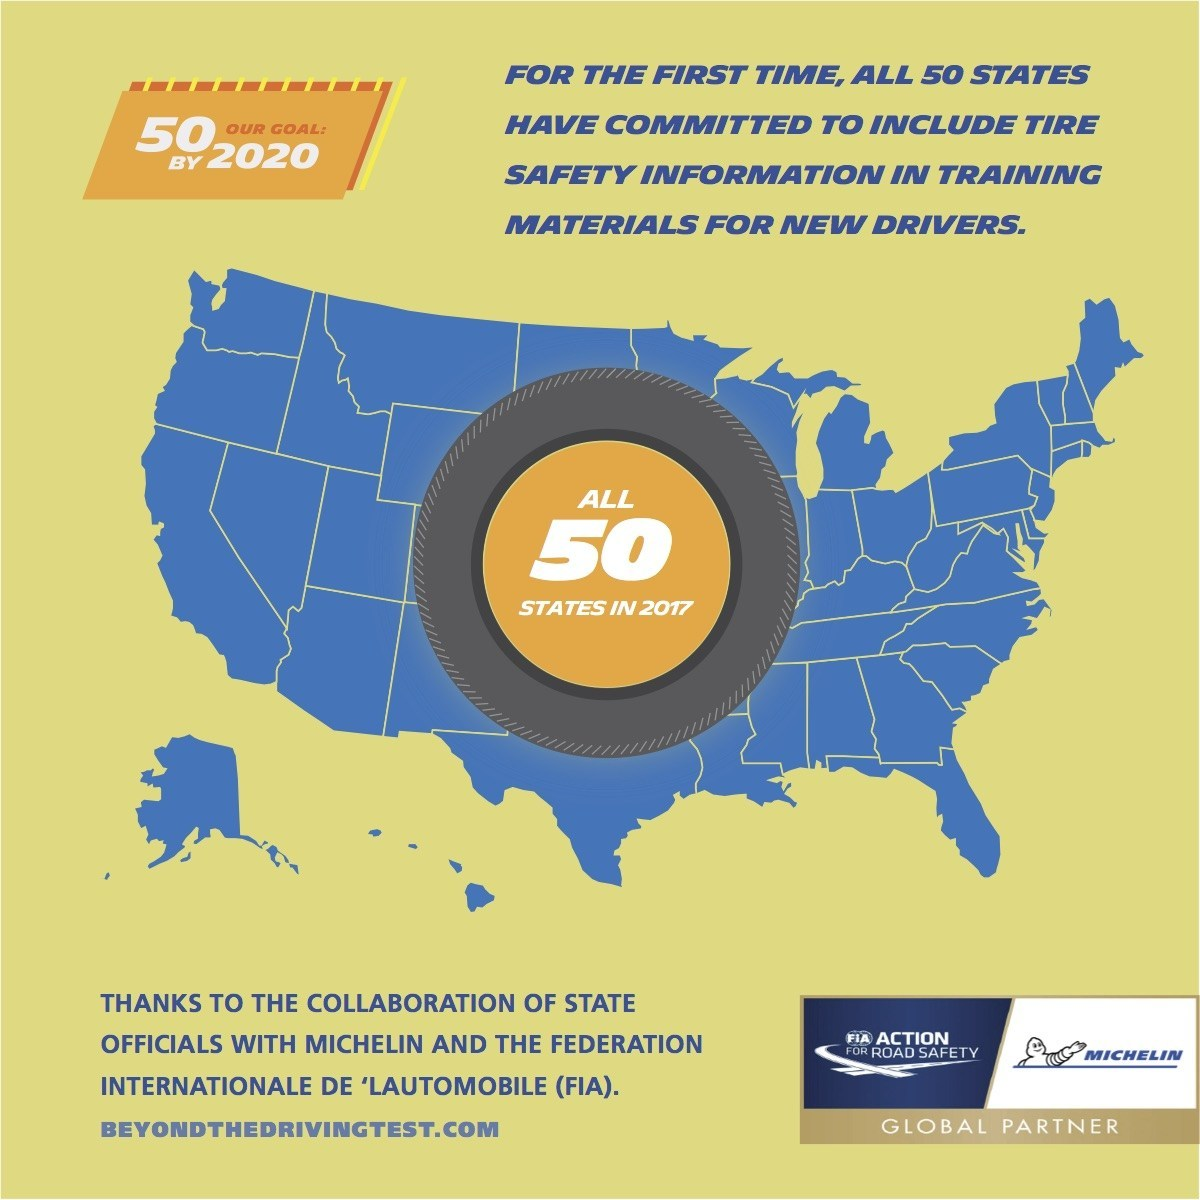 Michelin, FIA Improve Tire-Safety Education For New Drivers In All 50 States